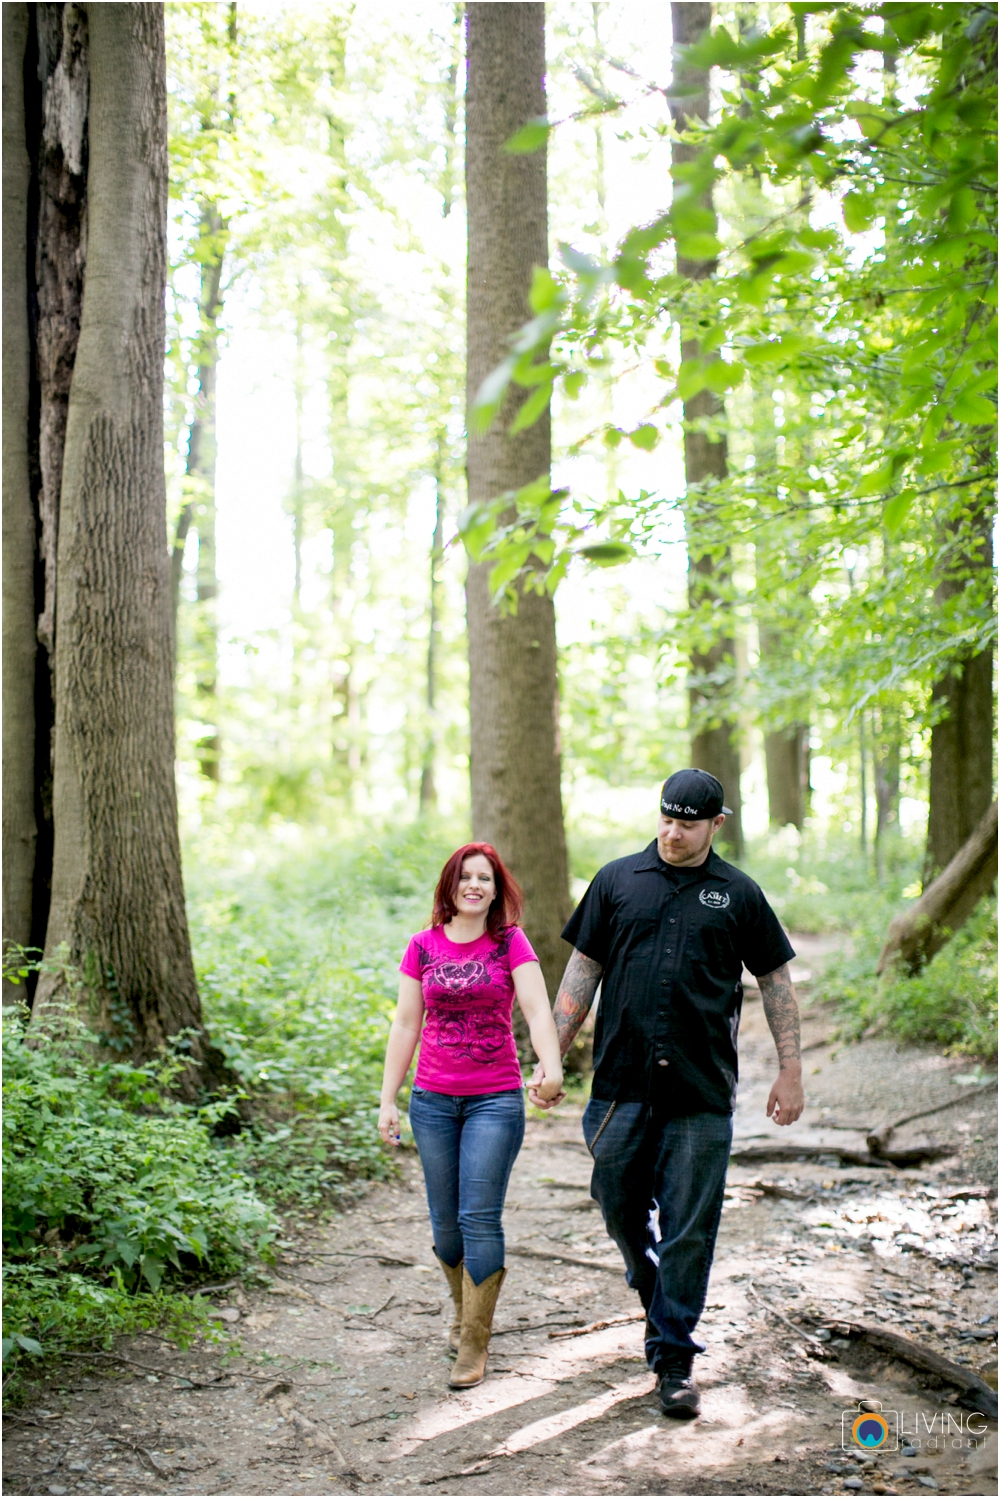 crystal-mike-engagement-session-ellicott-city-maryland-living-radiant-photography_0008.jpg